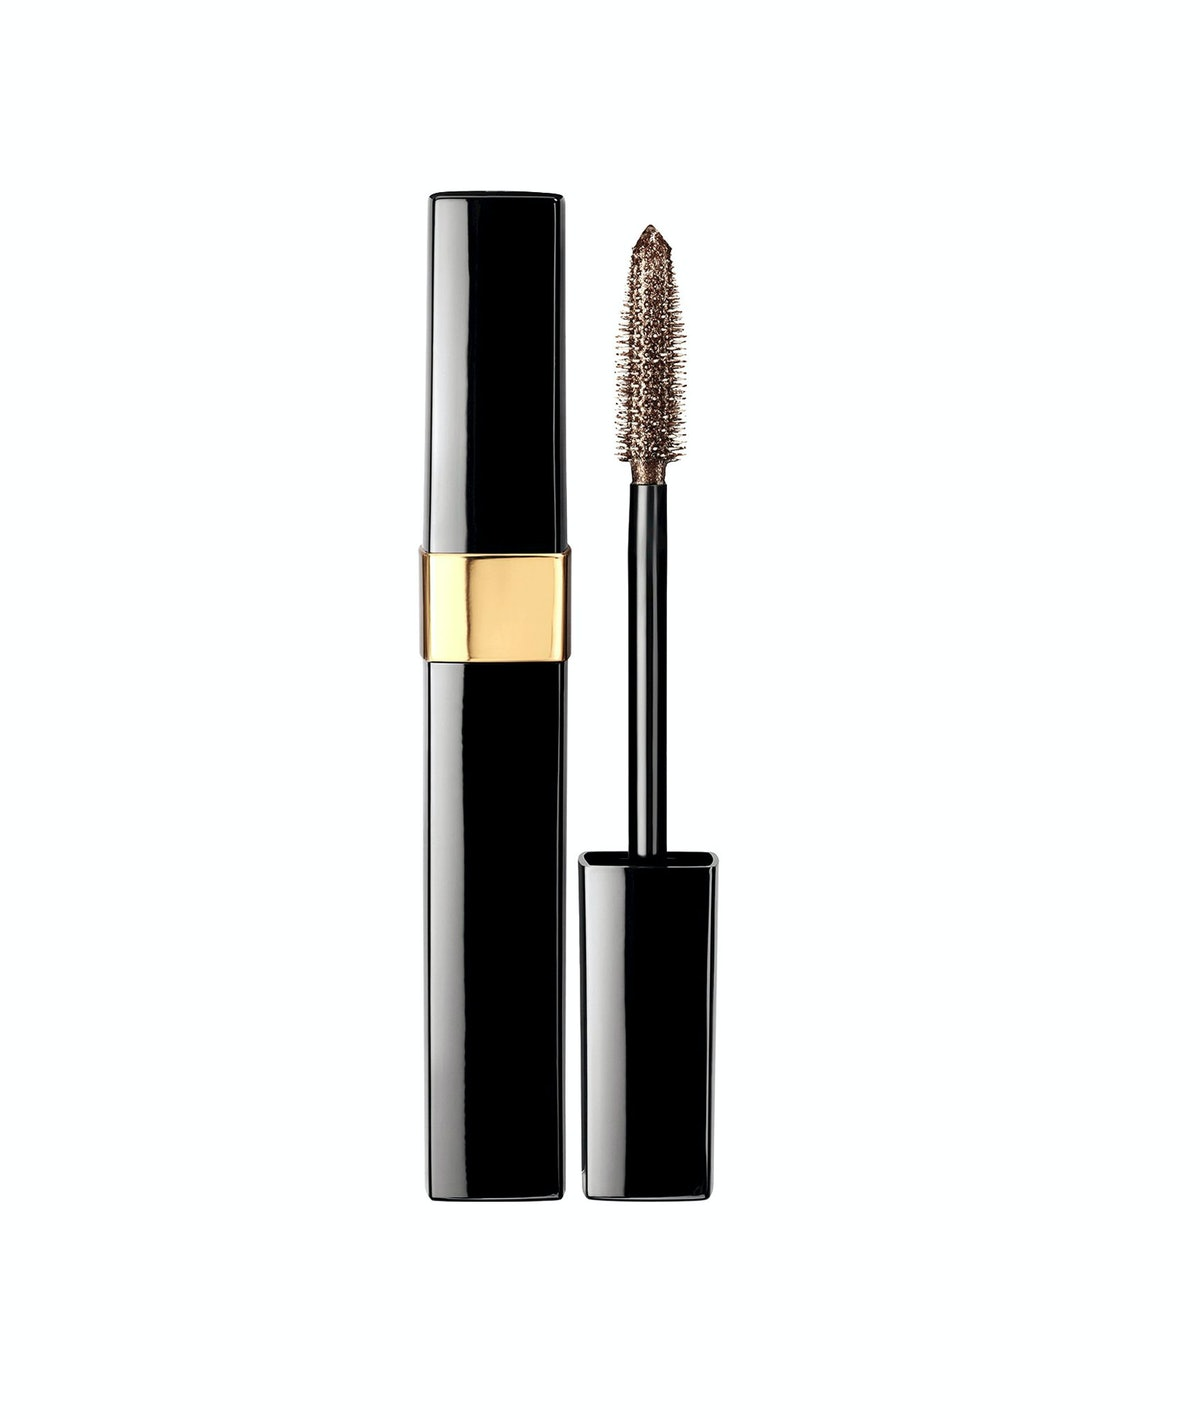 Chanel Sparkling Mascara Top Coat in Bronze Platine, $30, [nordstrom.com](http://rstyle.me/n/dnbb93w...